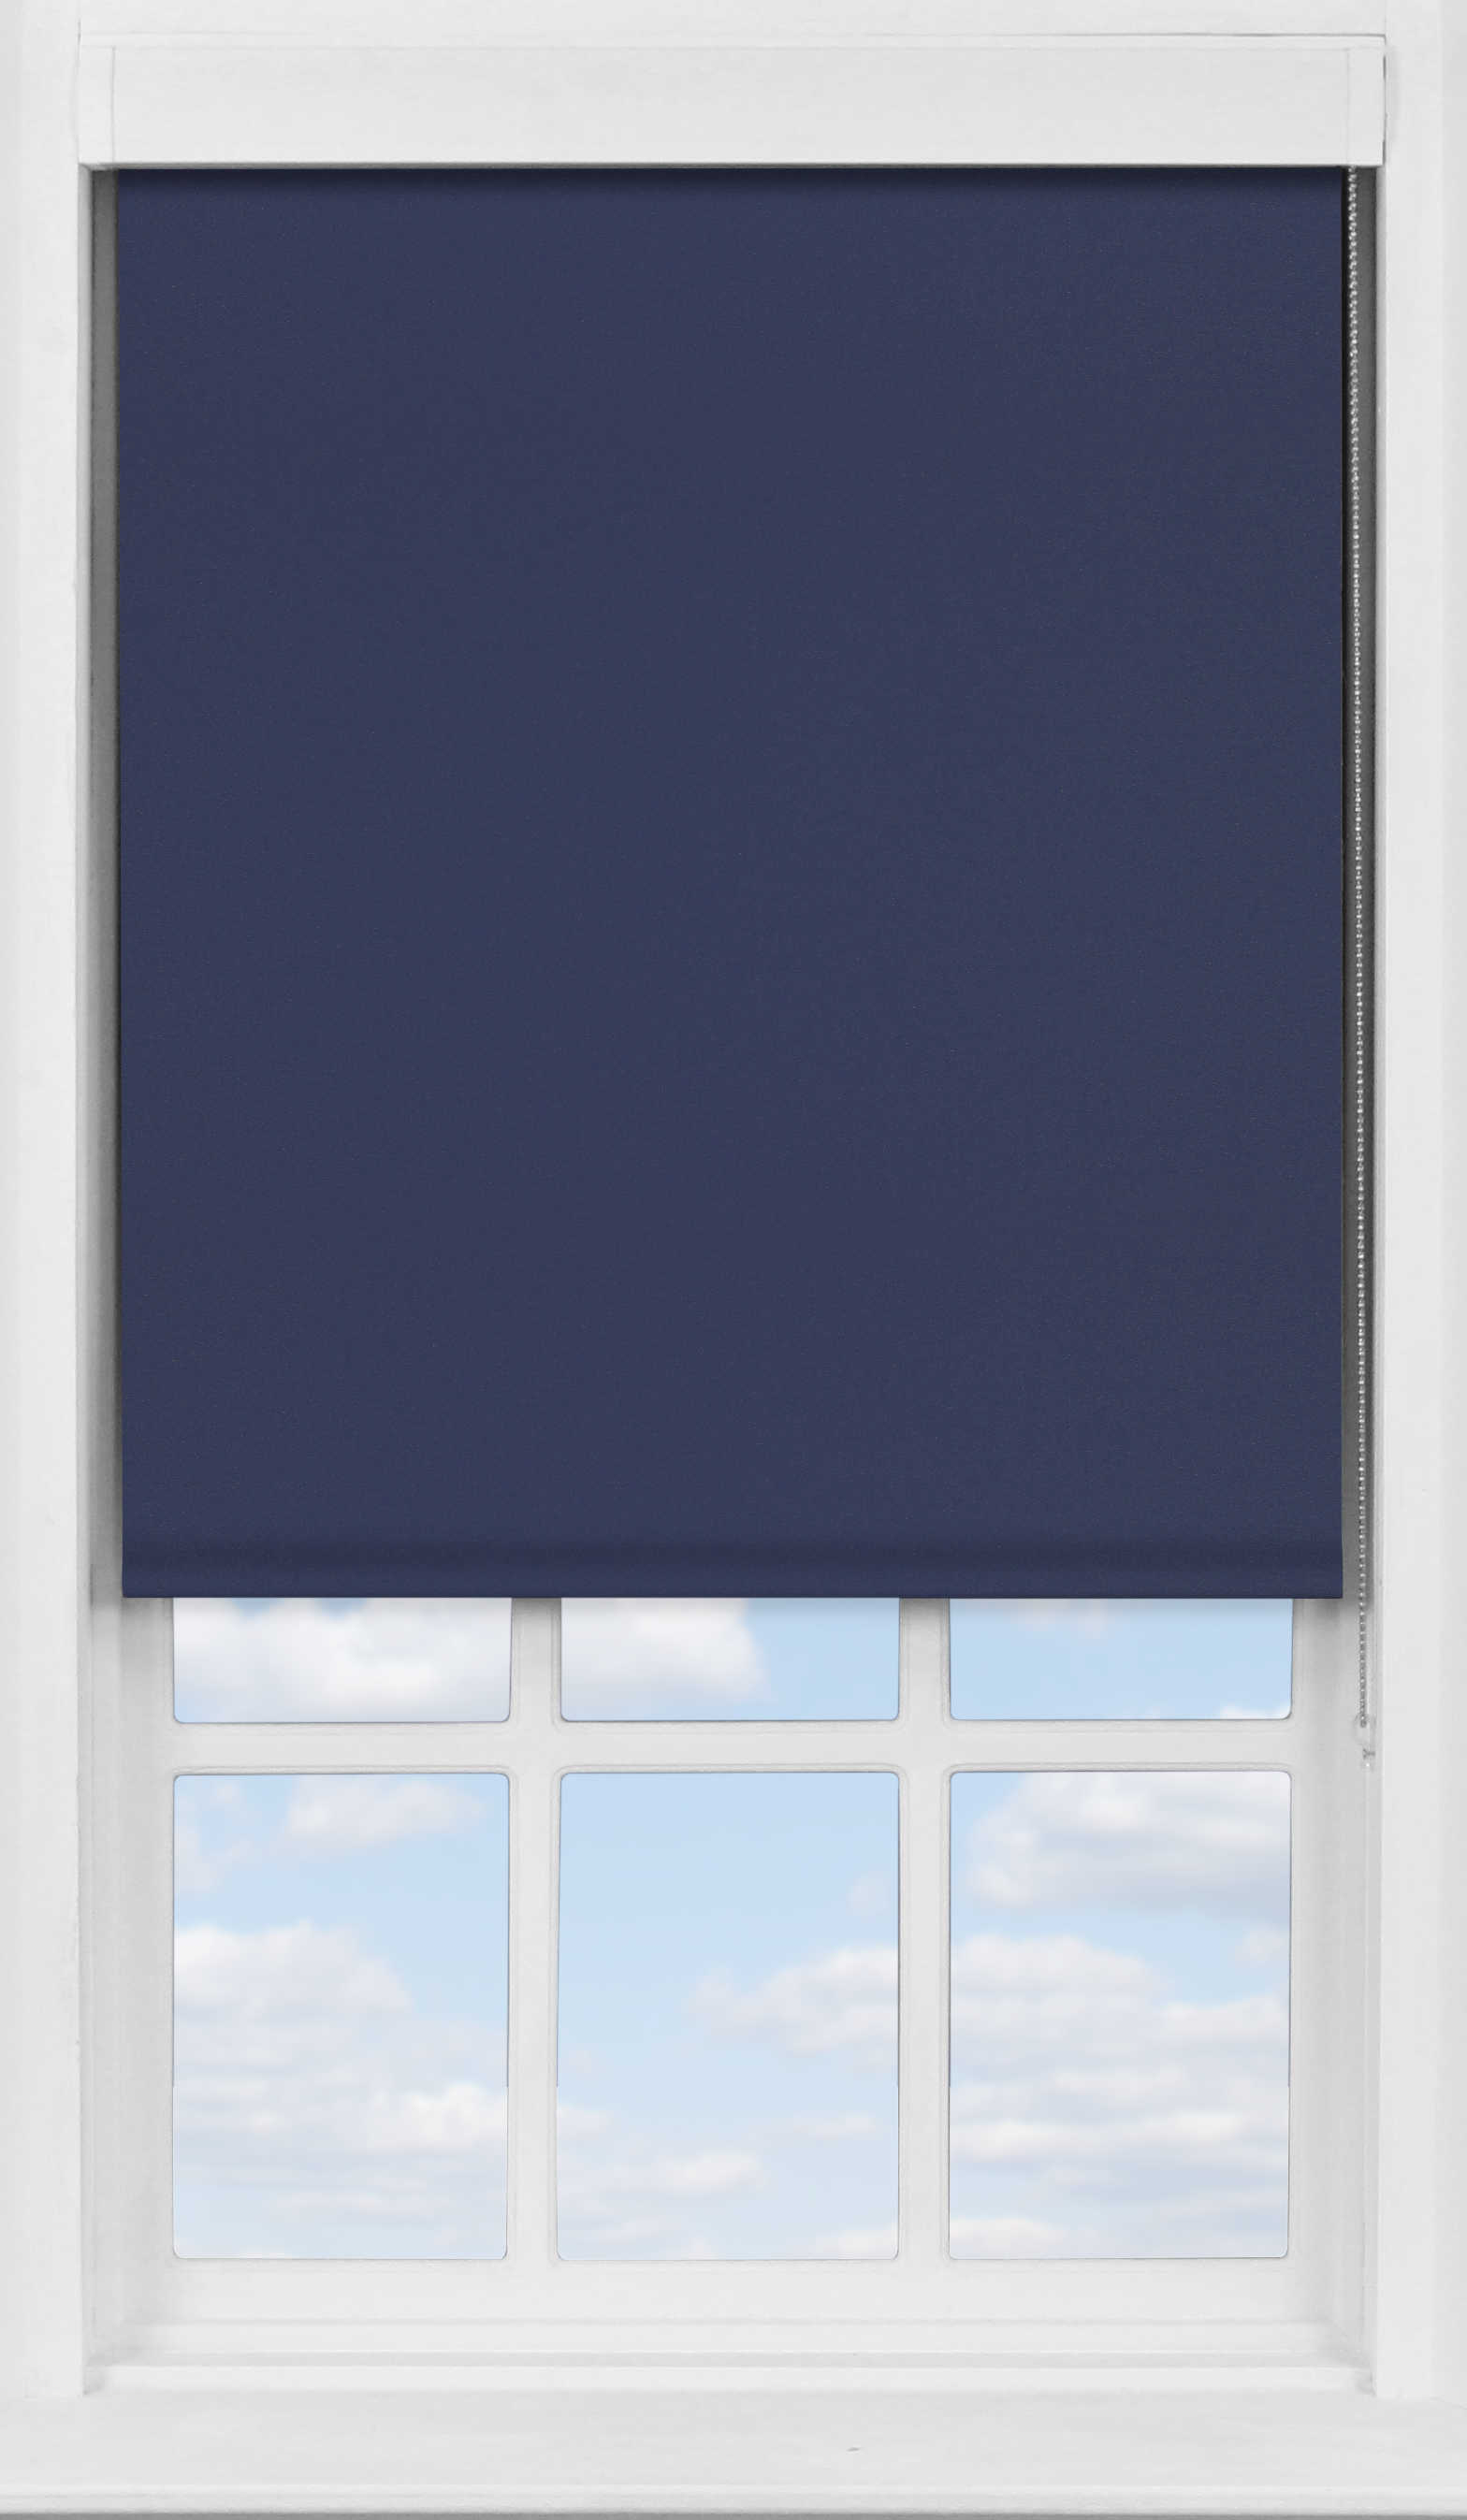 Premium Roller Blind in Celestial Blue Translucent